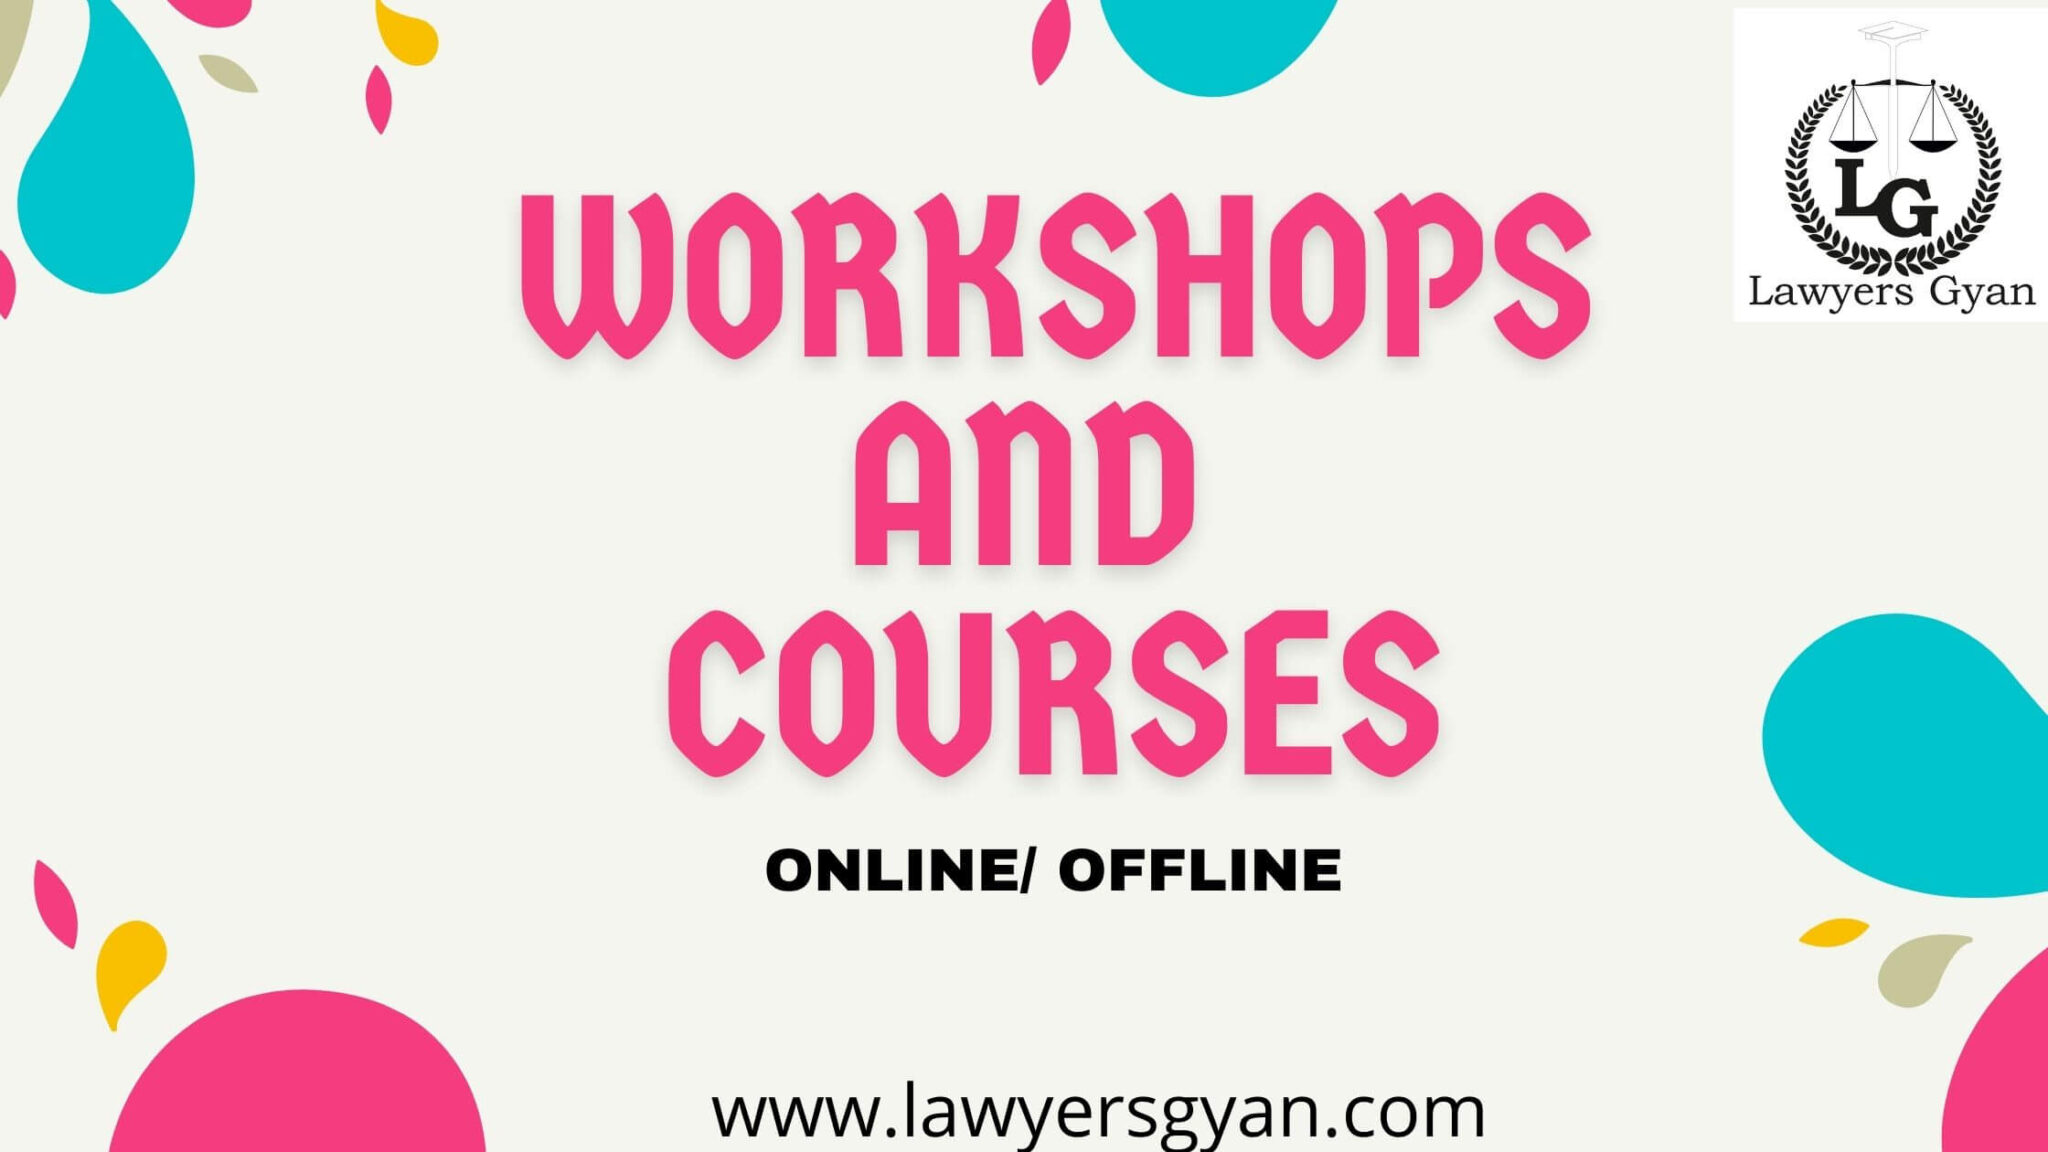 WORKSHOPS COURSES